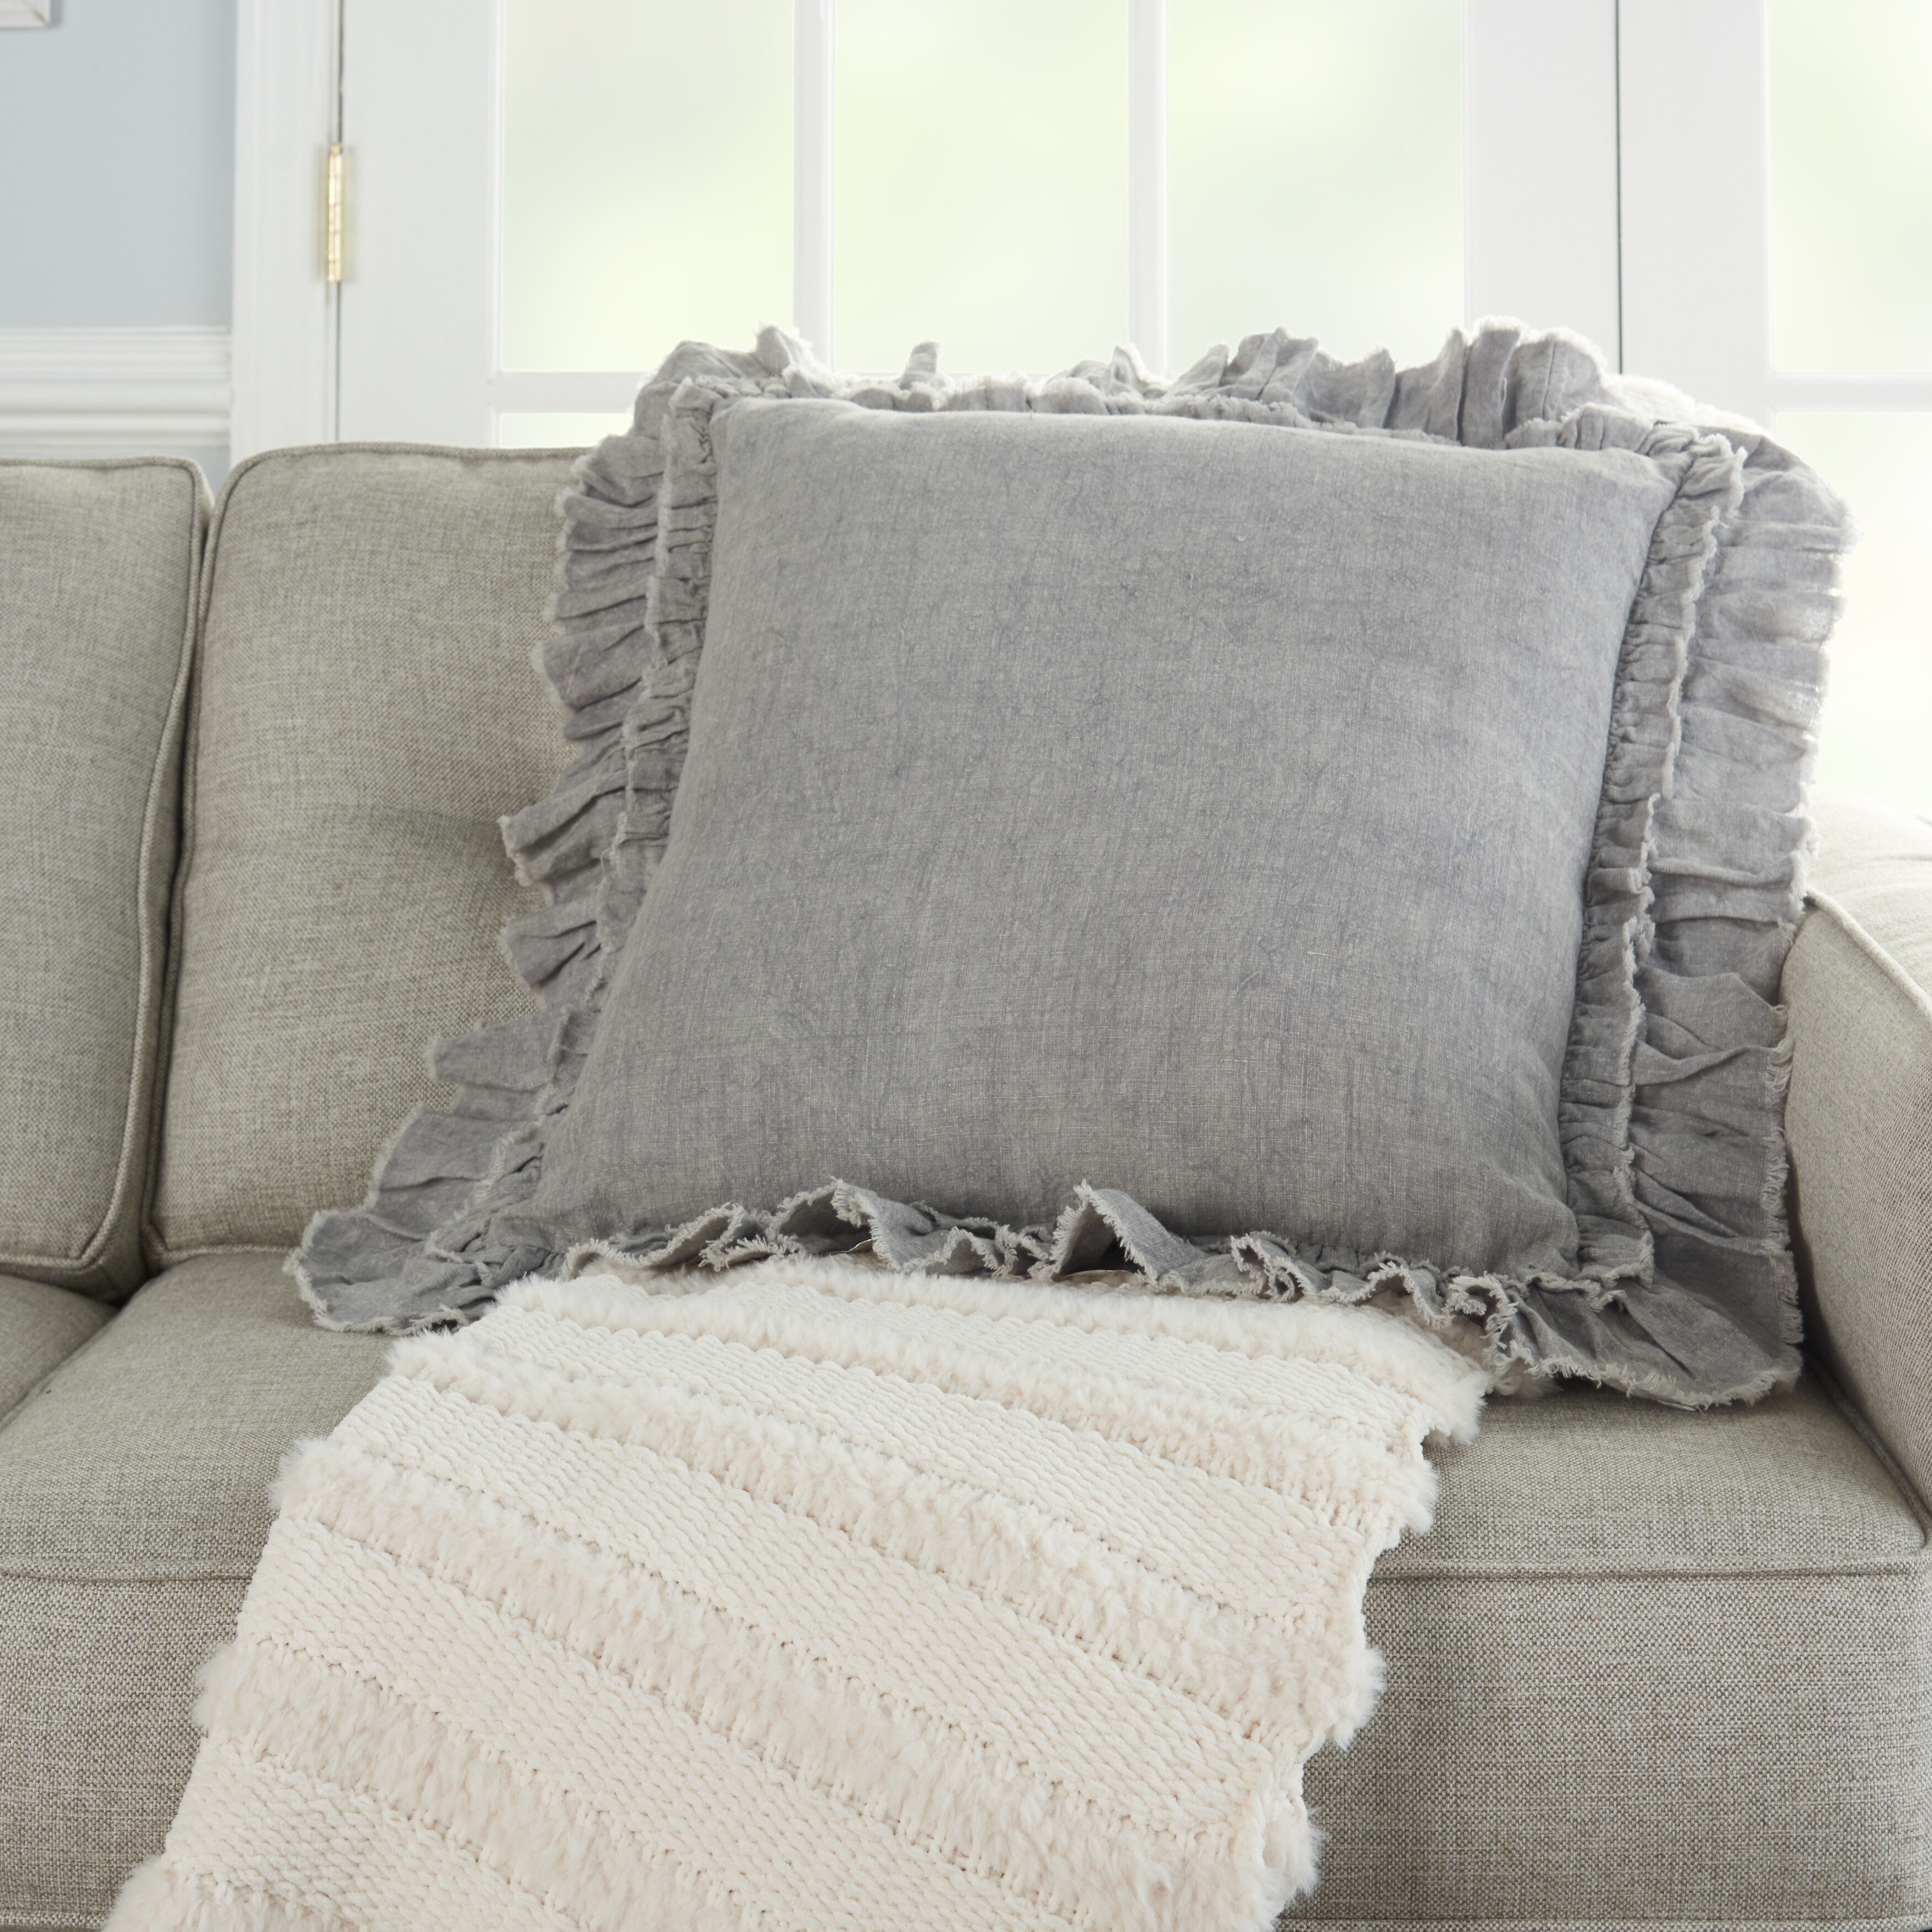 Cottage Americana Throw Pillows You Ll Love In 2021 Wayfair